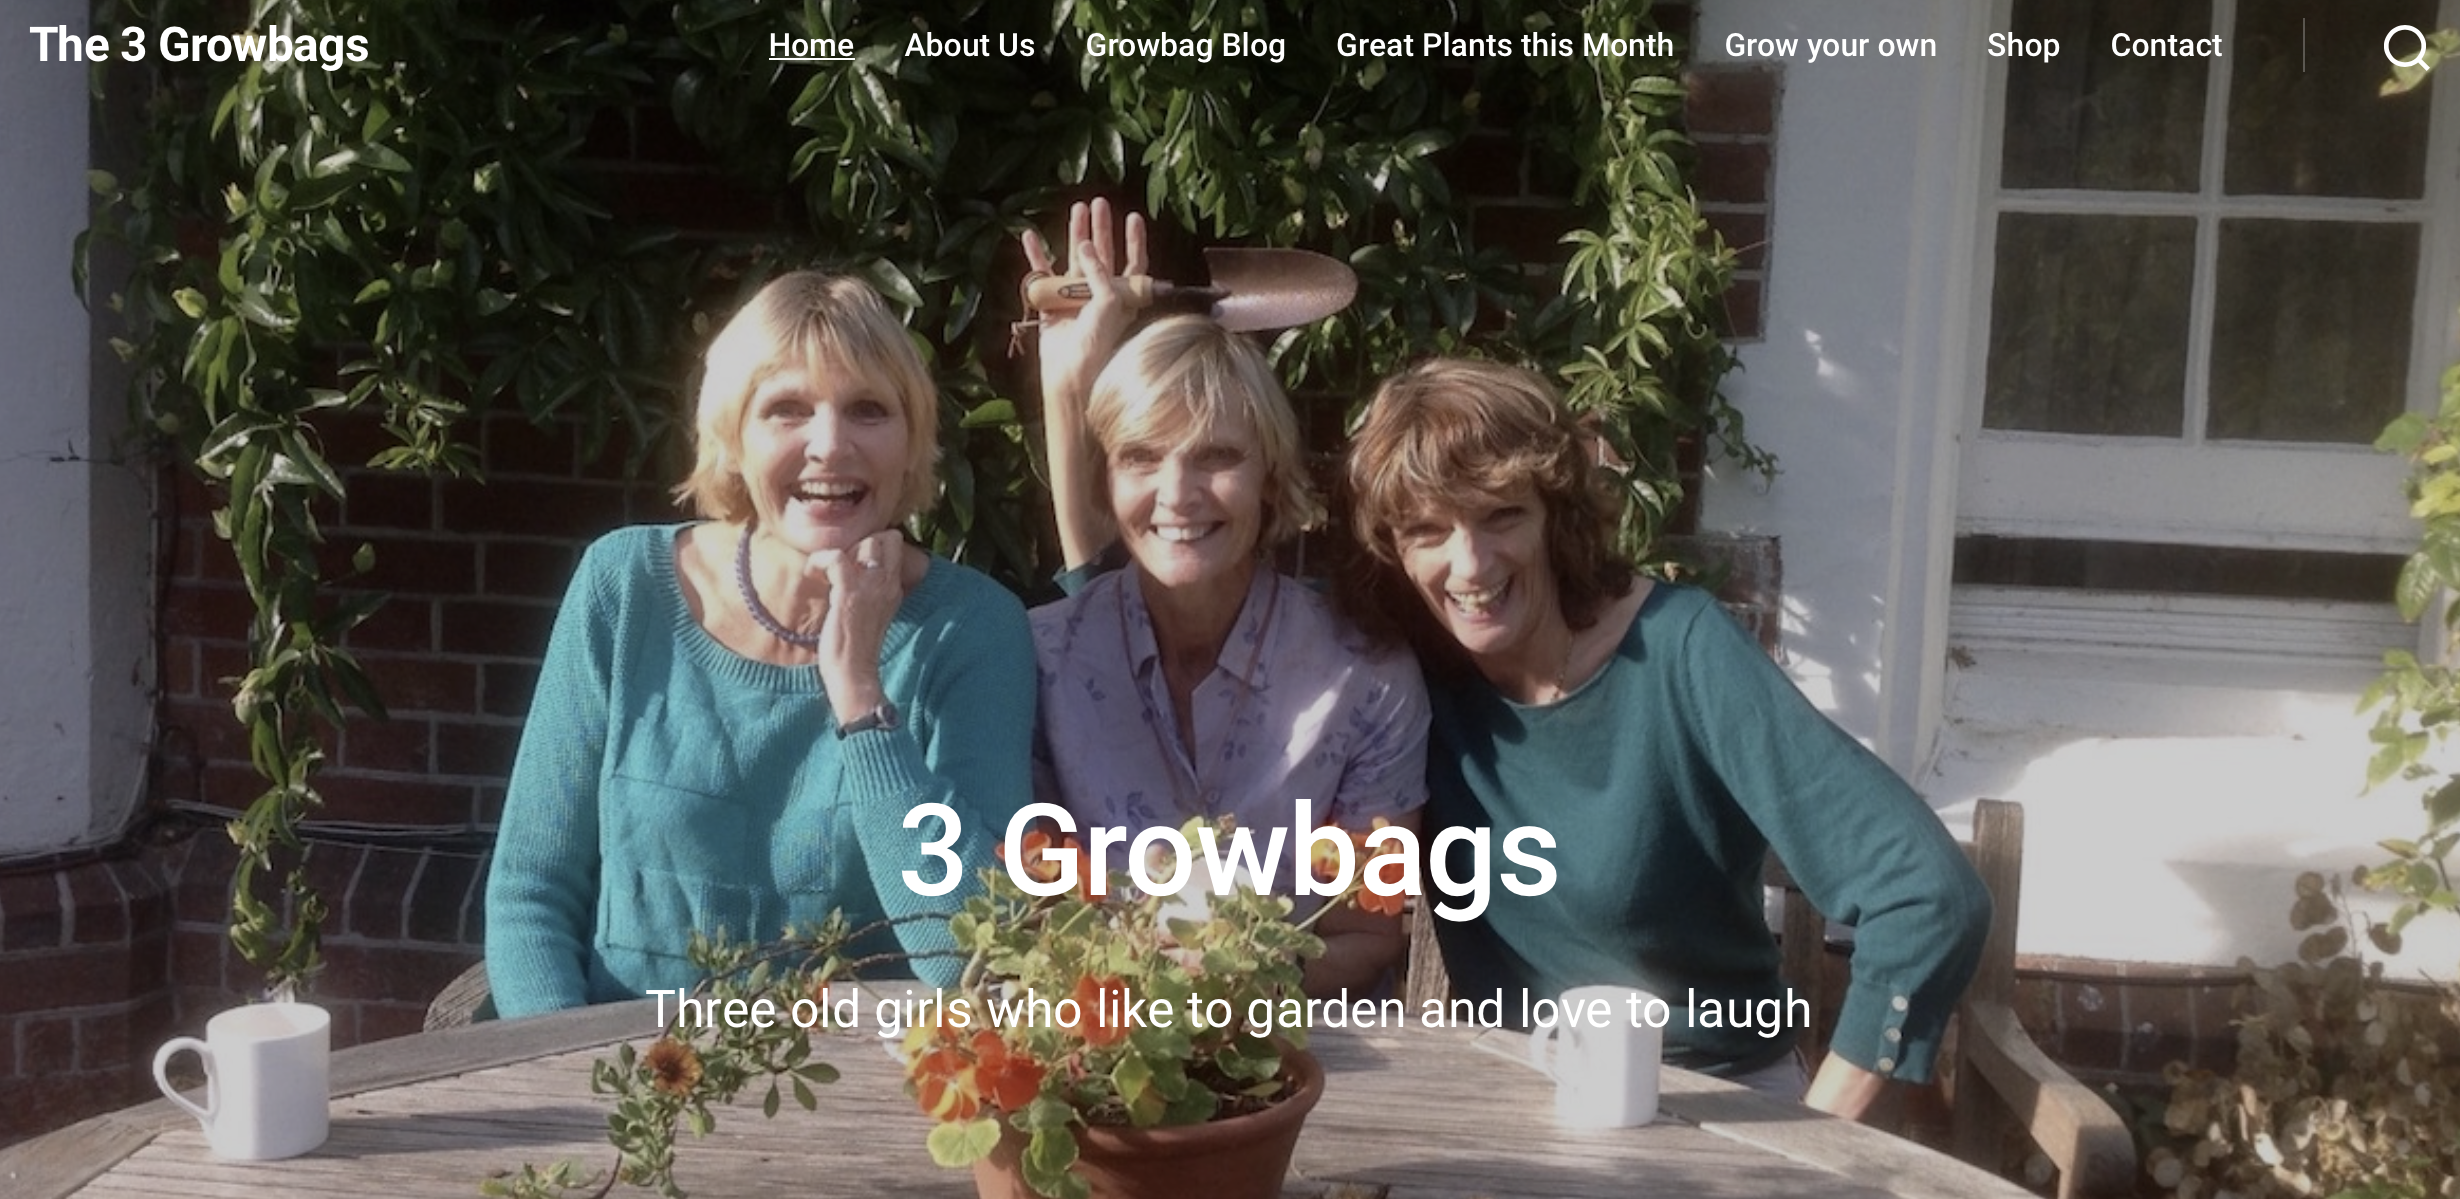 The 3 Growbags